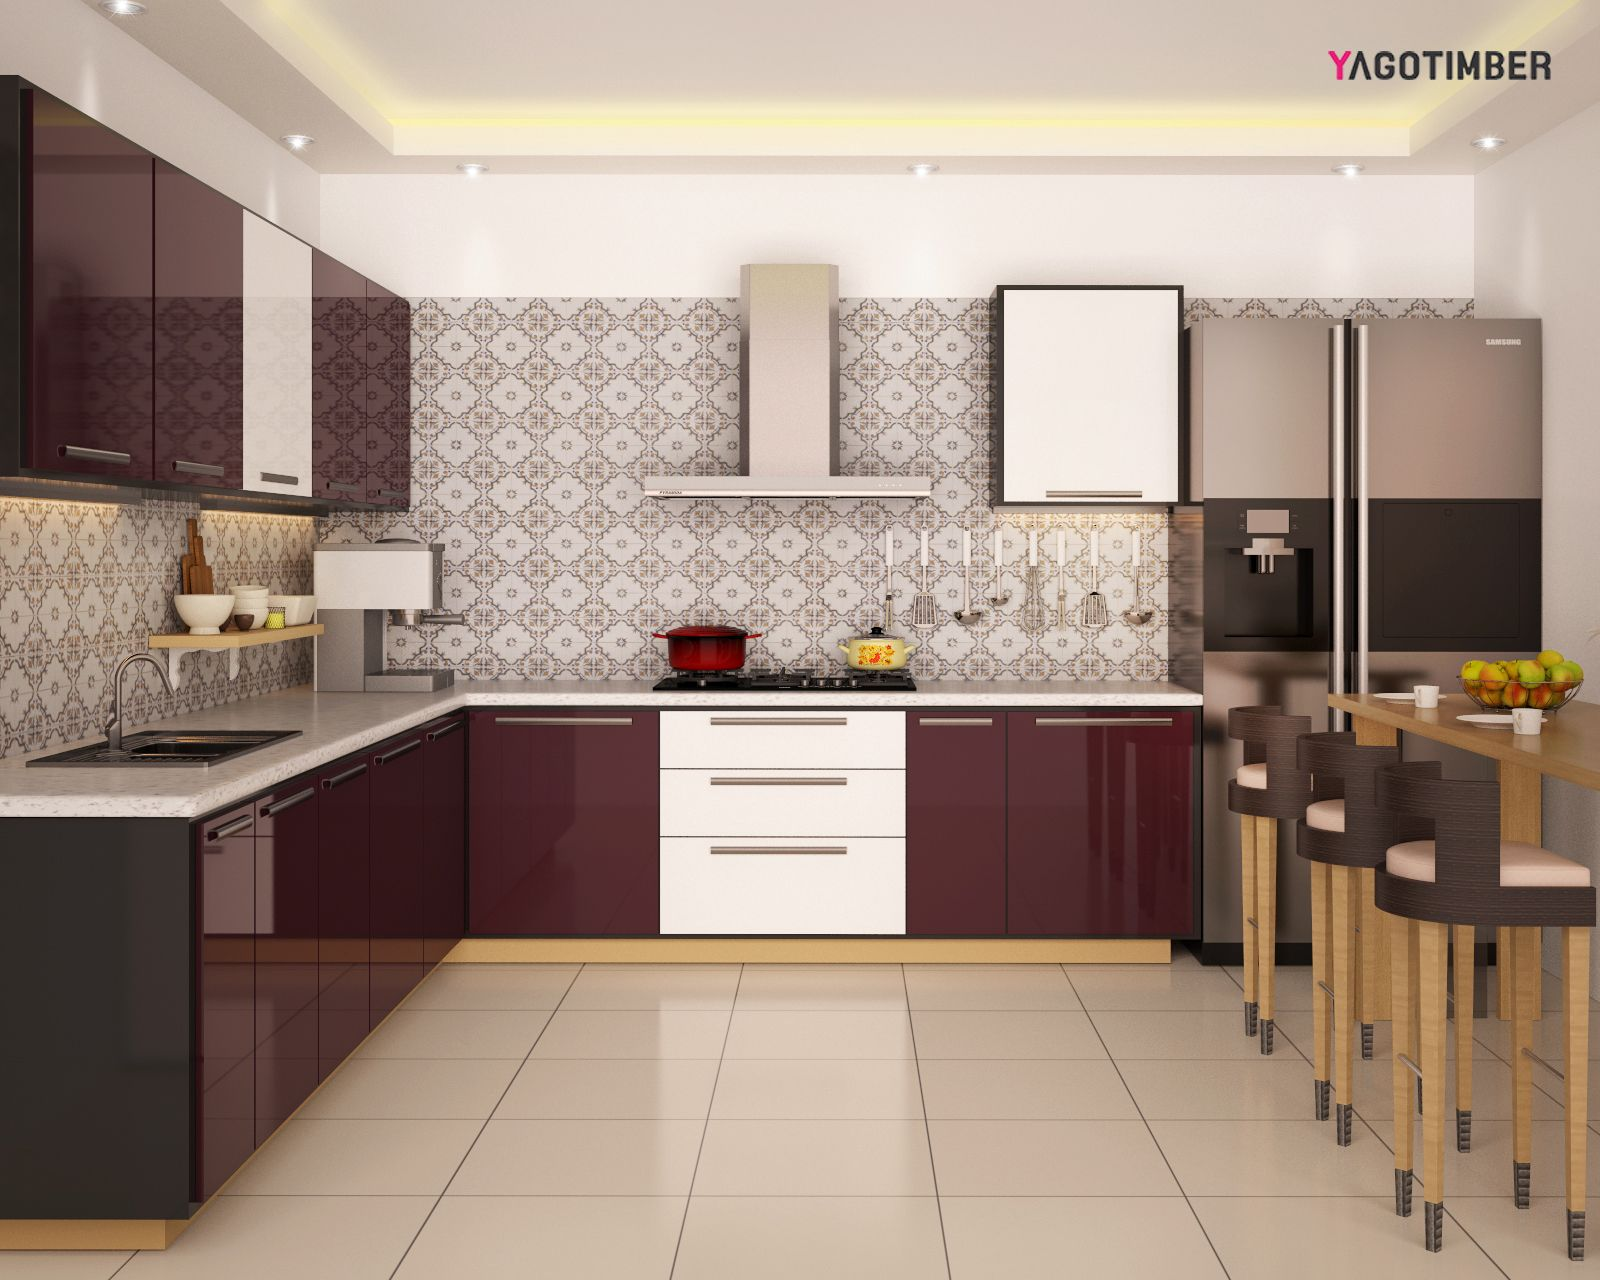 Get Delightful Modularkitchen Interior Design Ideas In Delhi Ncr Only At Yagotimber Com Interior Design Kitchen Kitchen Interior Kitchen Inspiration Design